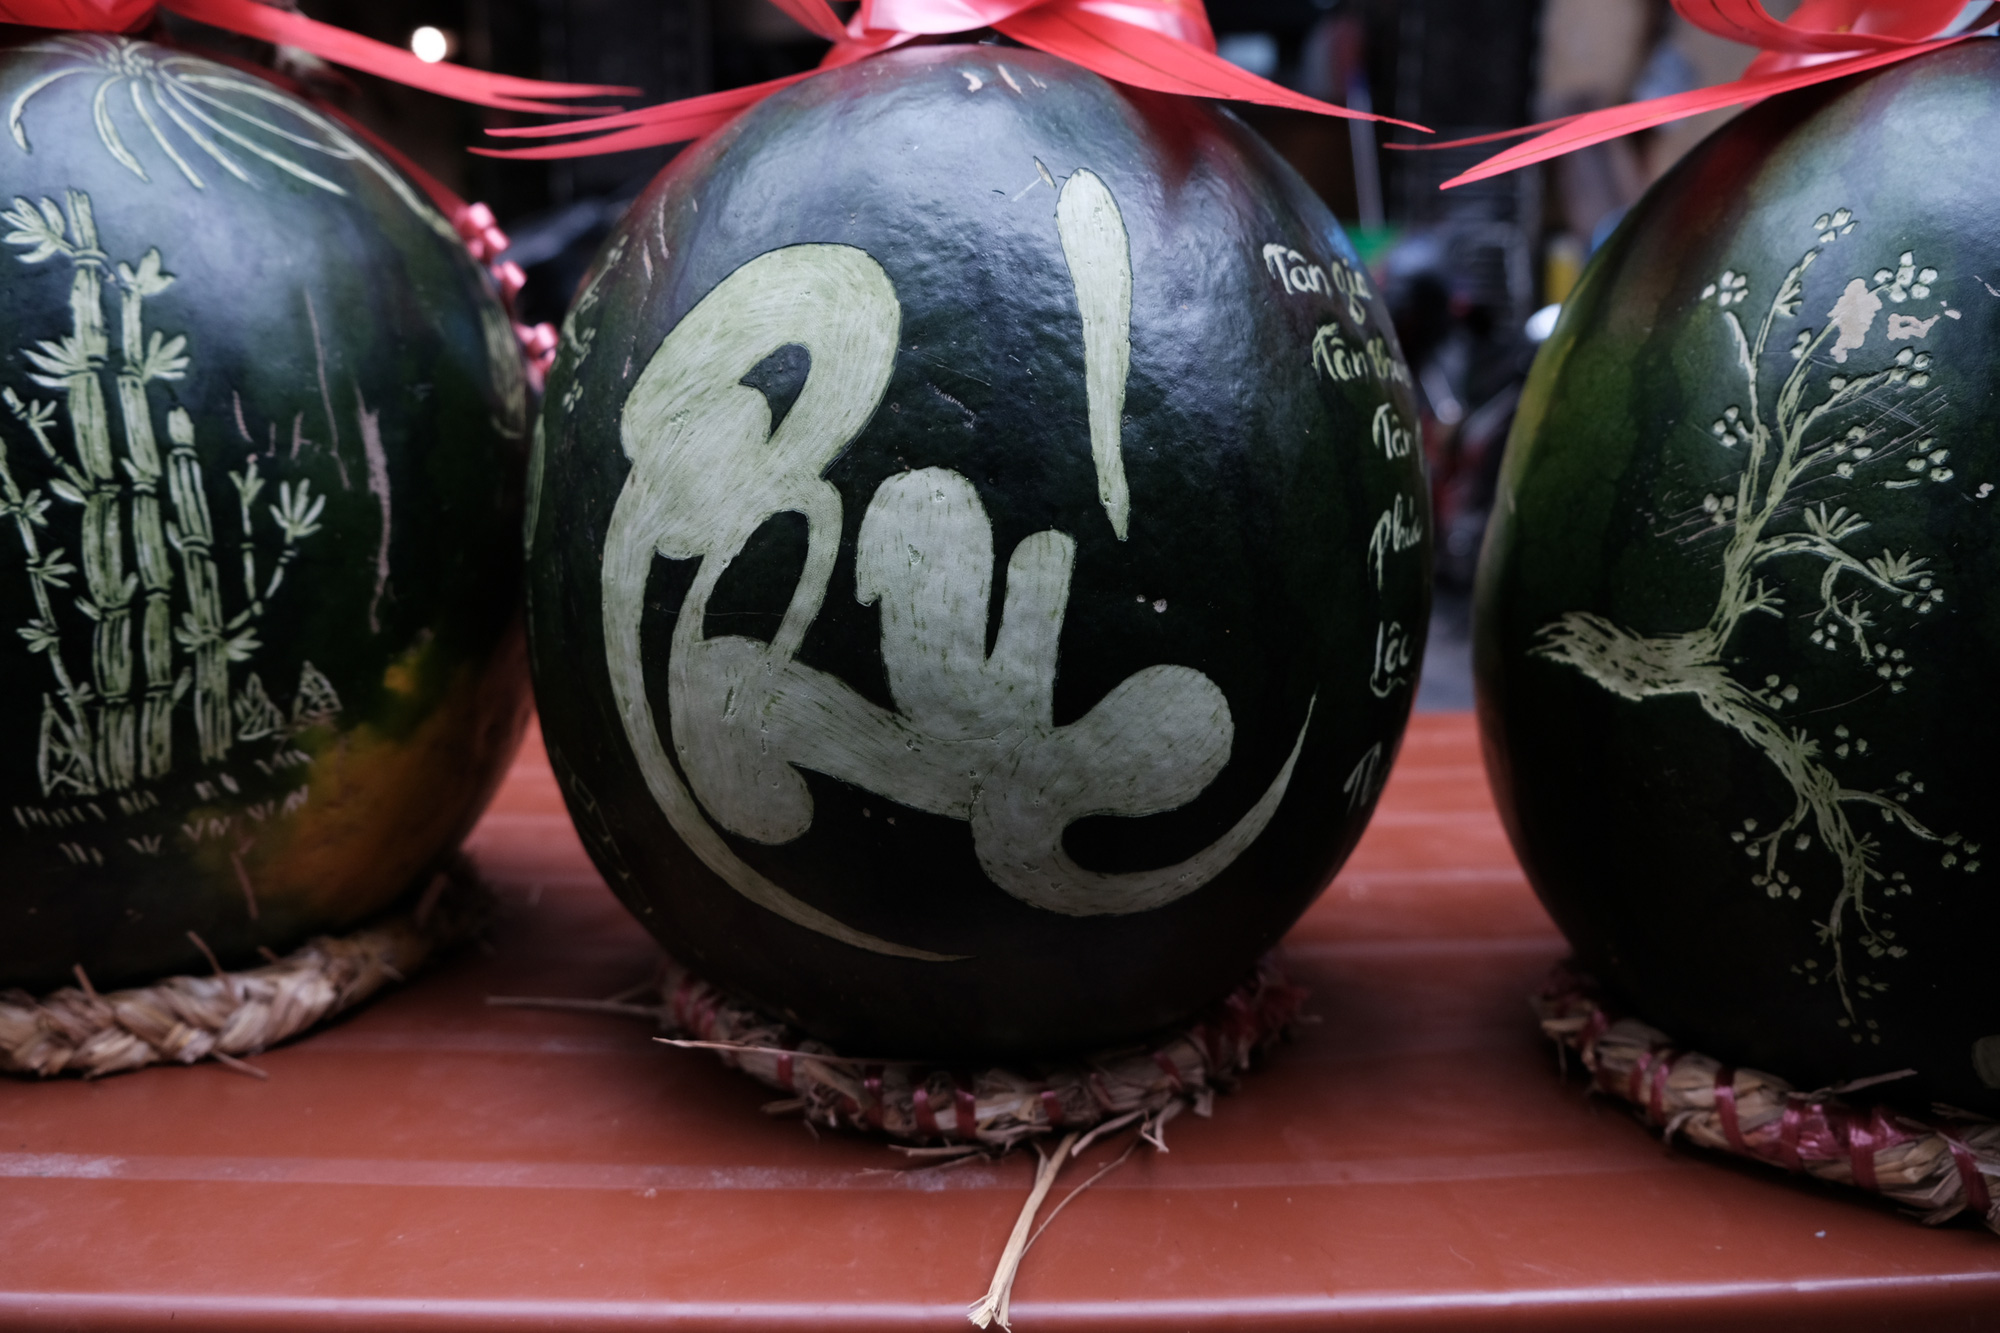 Calligraphic watermelons are sold at the Hang Luoc flower market in Hoan Kiem District, Hanoi. Photo: Mai Thuong / Tuoi Tre